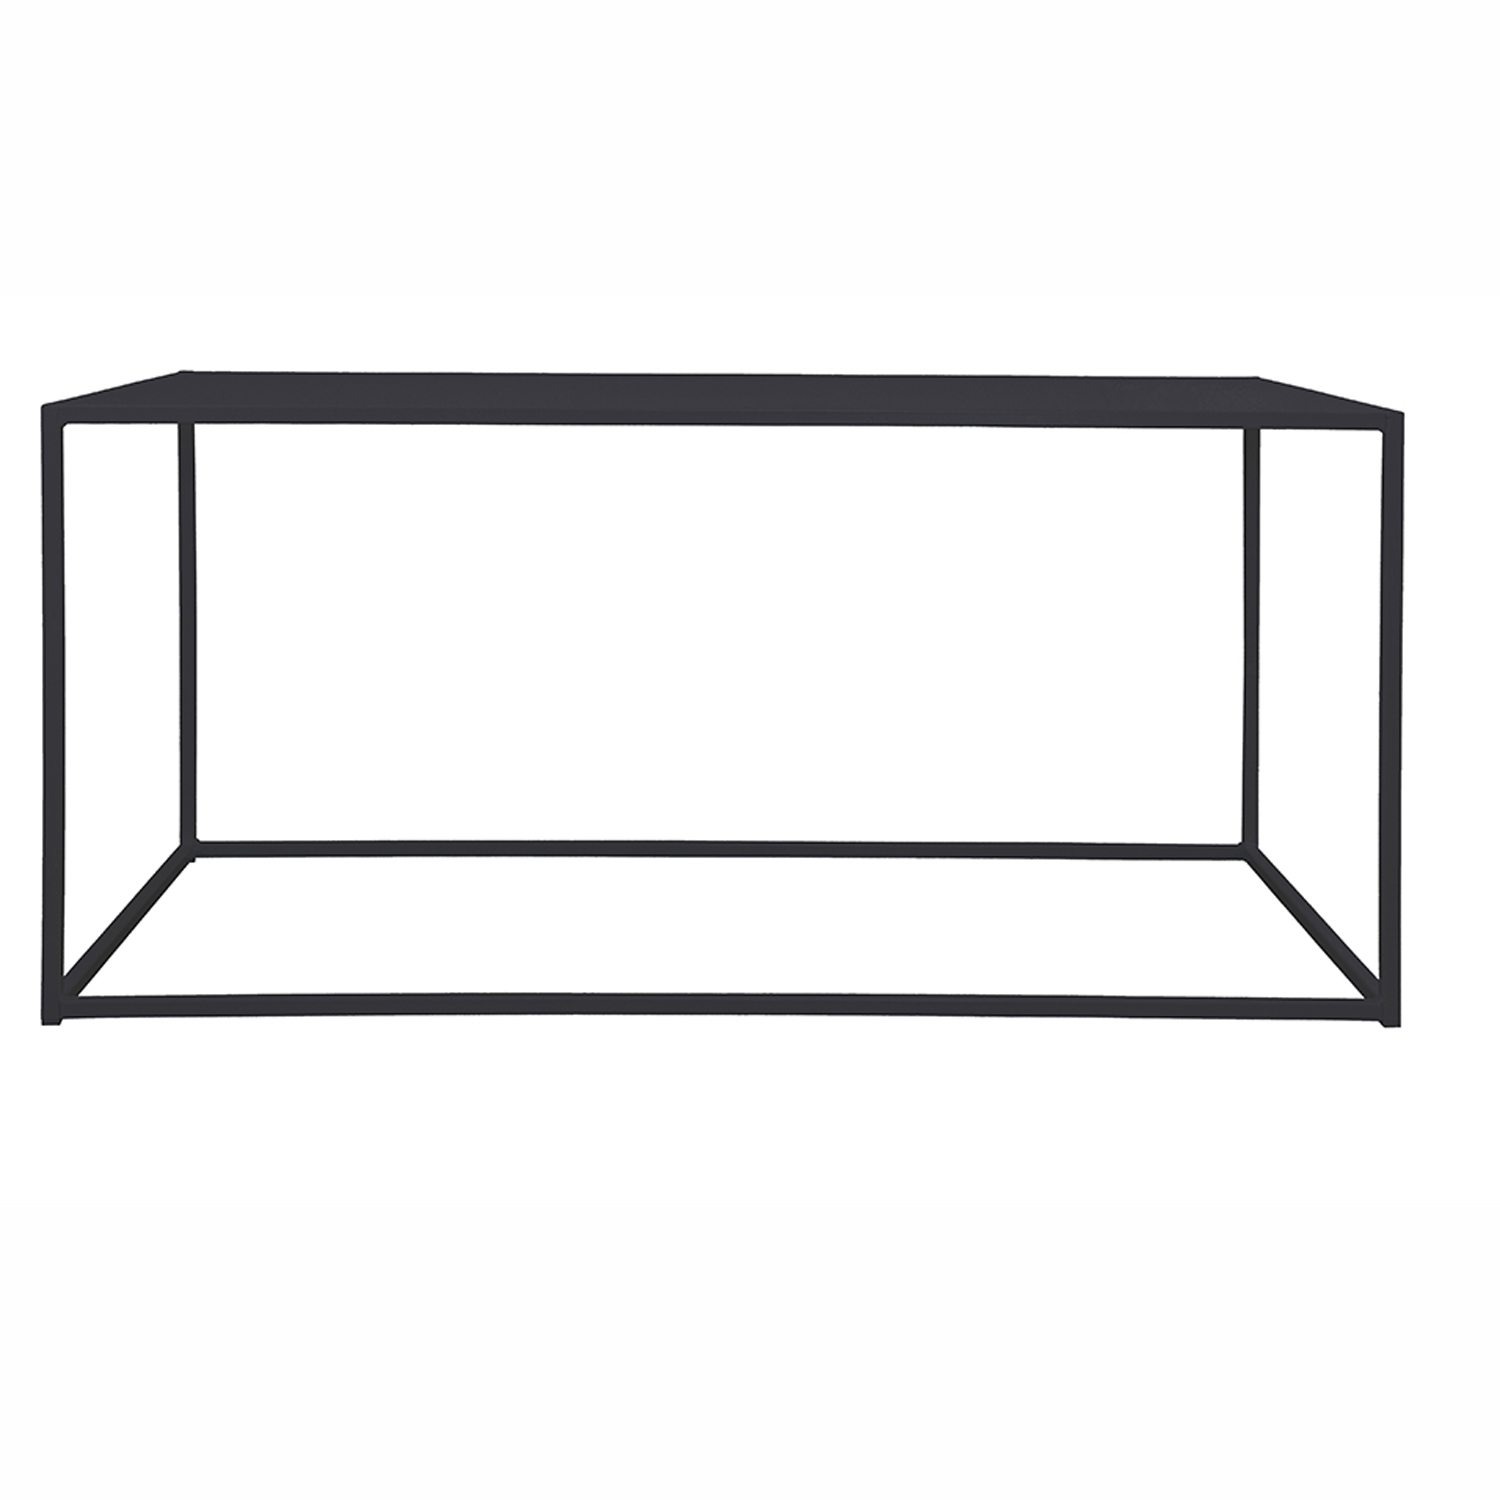 Domo Rectangle soffbord, svart